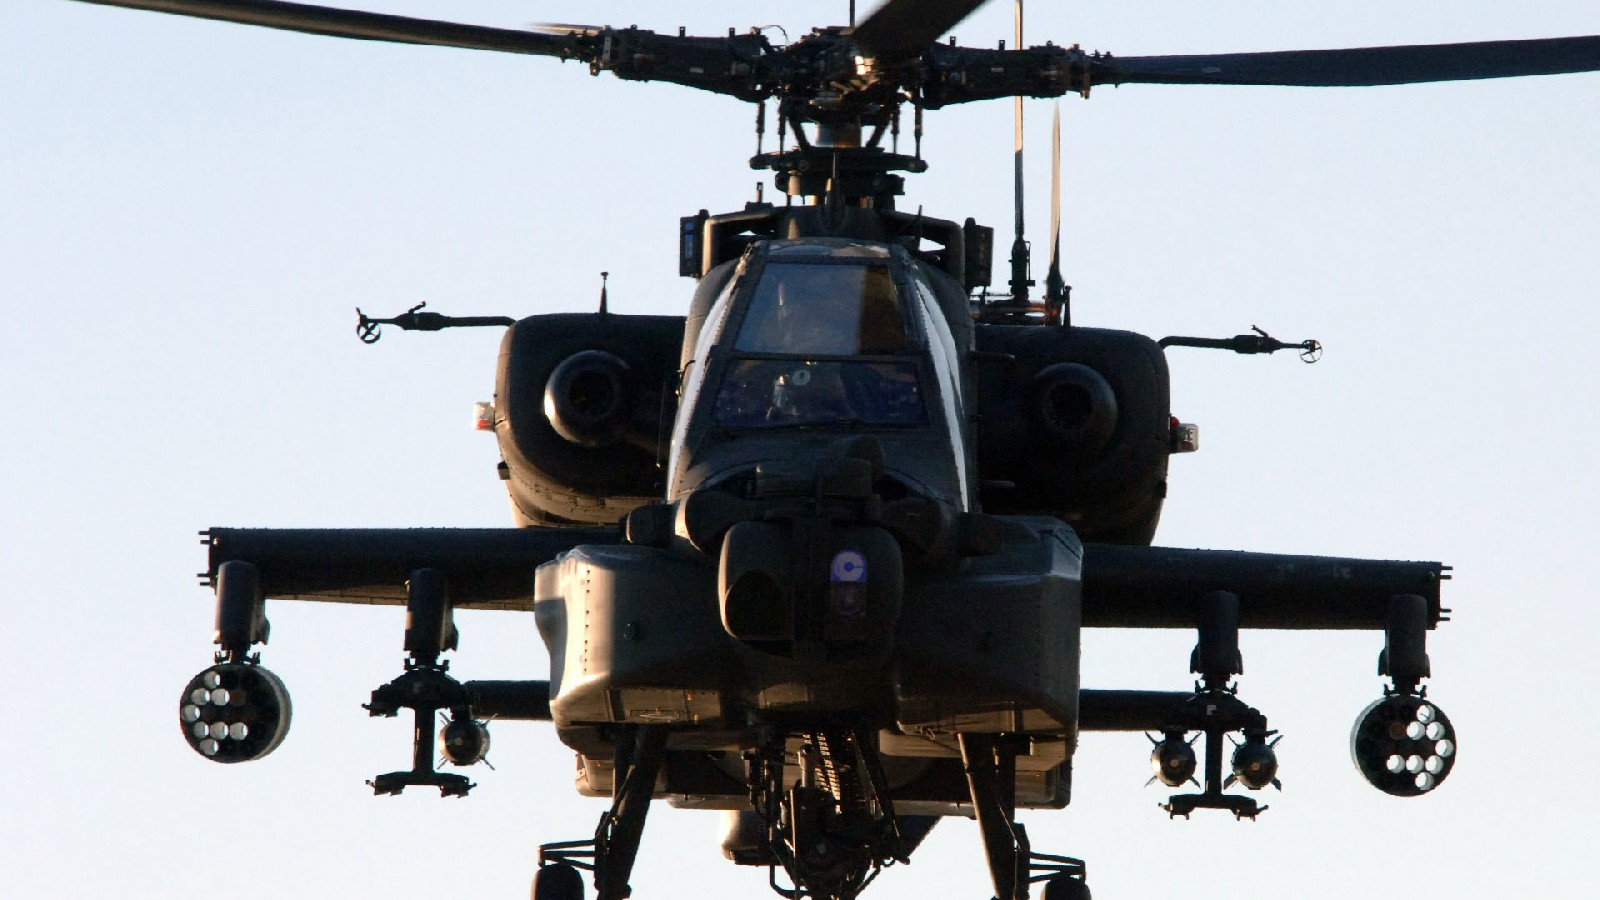 apache helicopter with Us Military War Helicopter Wallpaper 1600x900 on 08 06 08b further H 64 walk together with File LEGO AH 64 Apache   Top View likewise Watch together with Flying Tigers Attack.